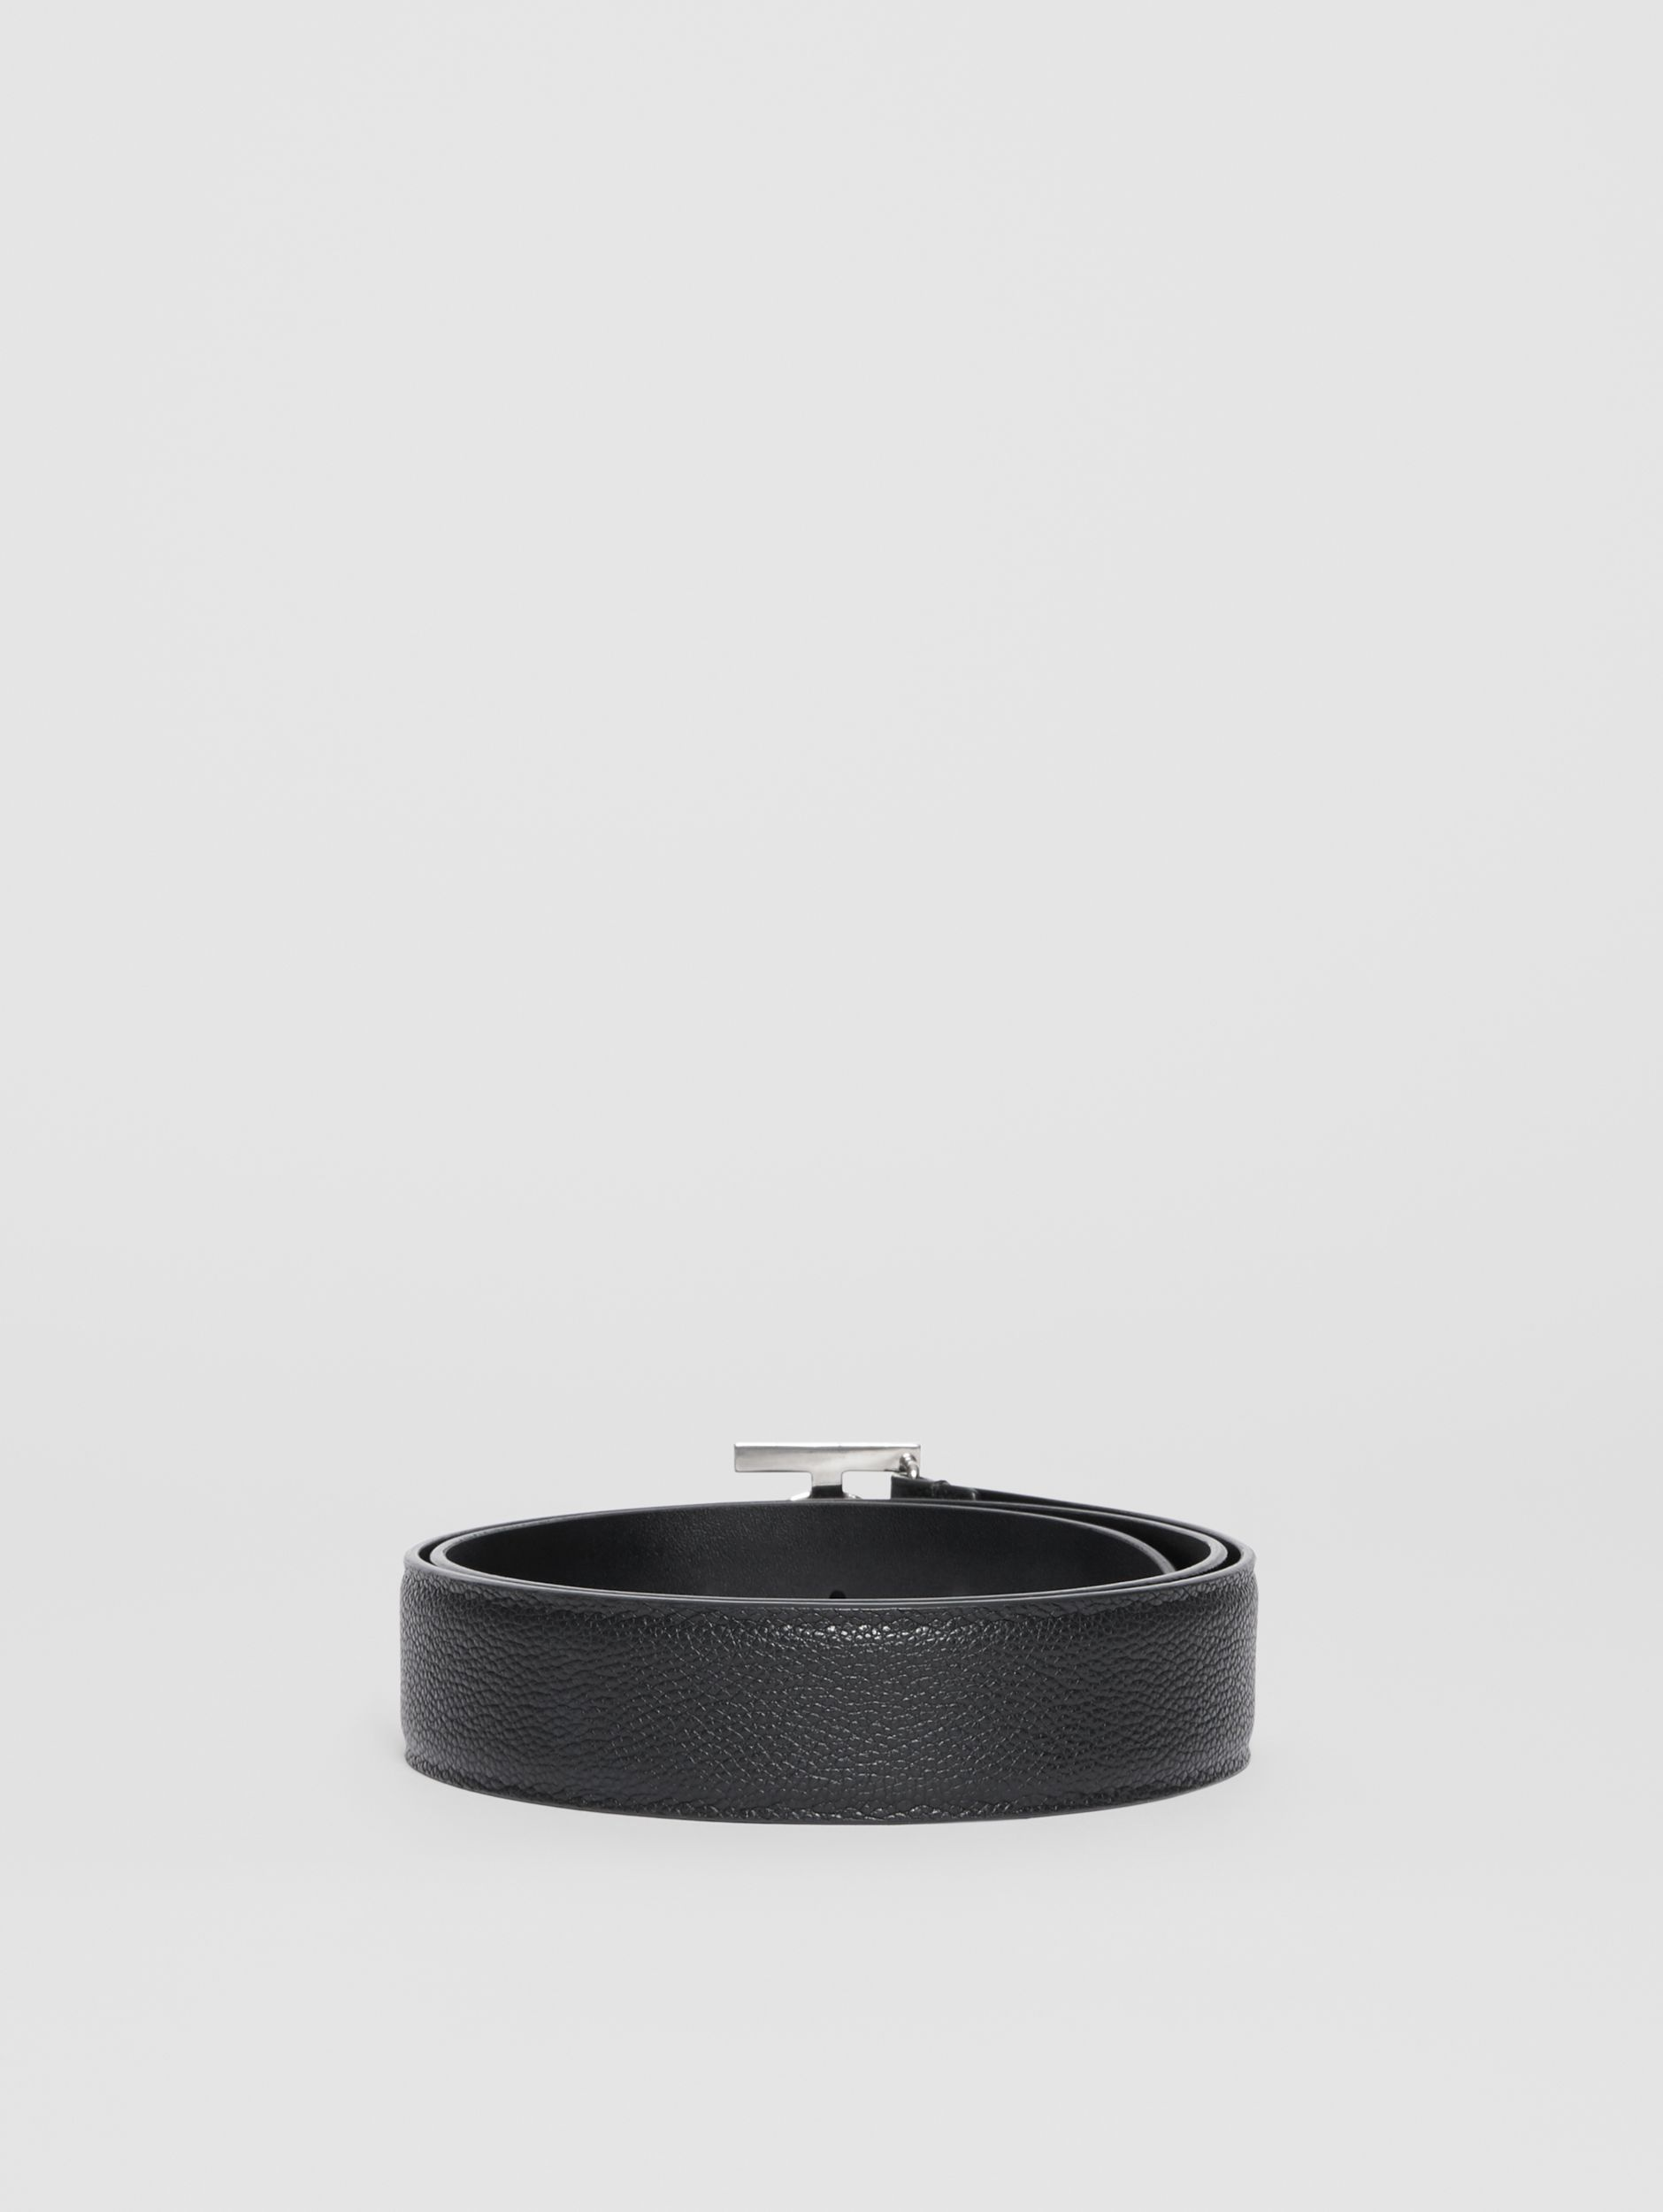 Monogram Motif Grainy Leather Belt in Black - Men | Burberry - 4